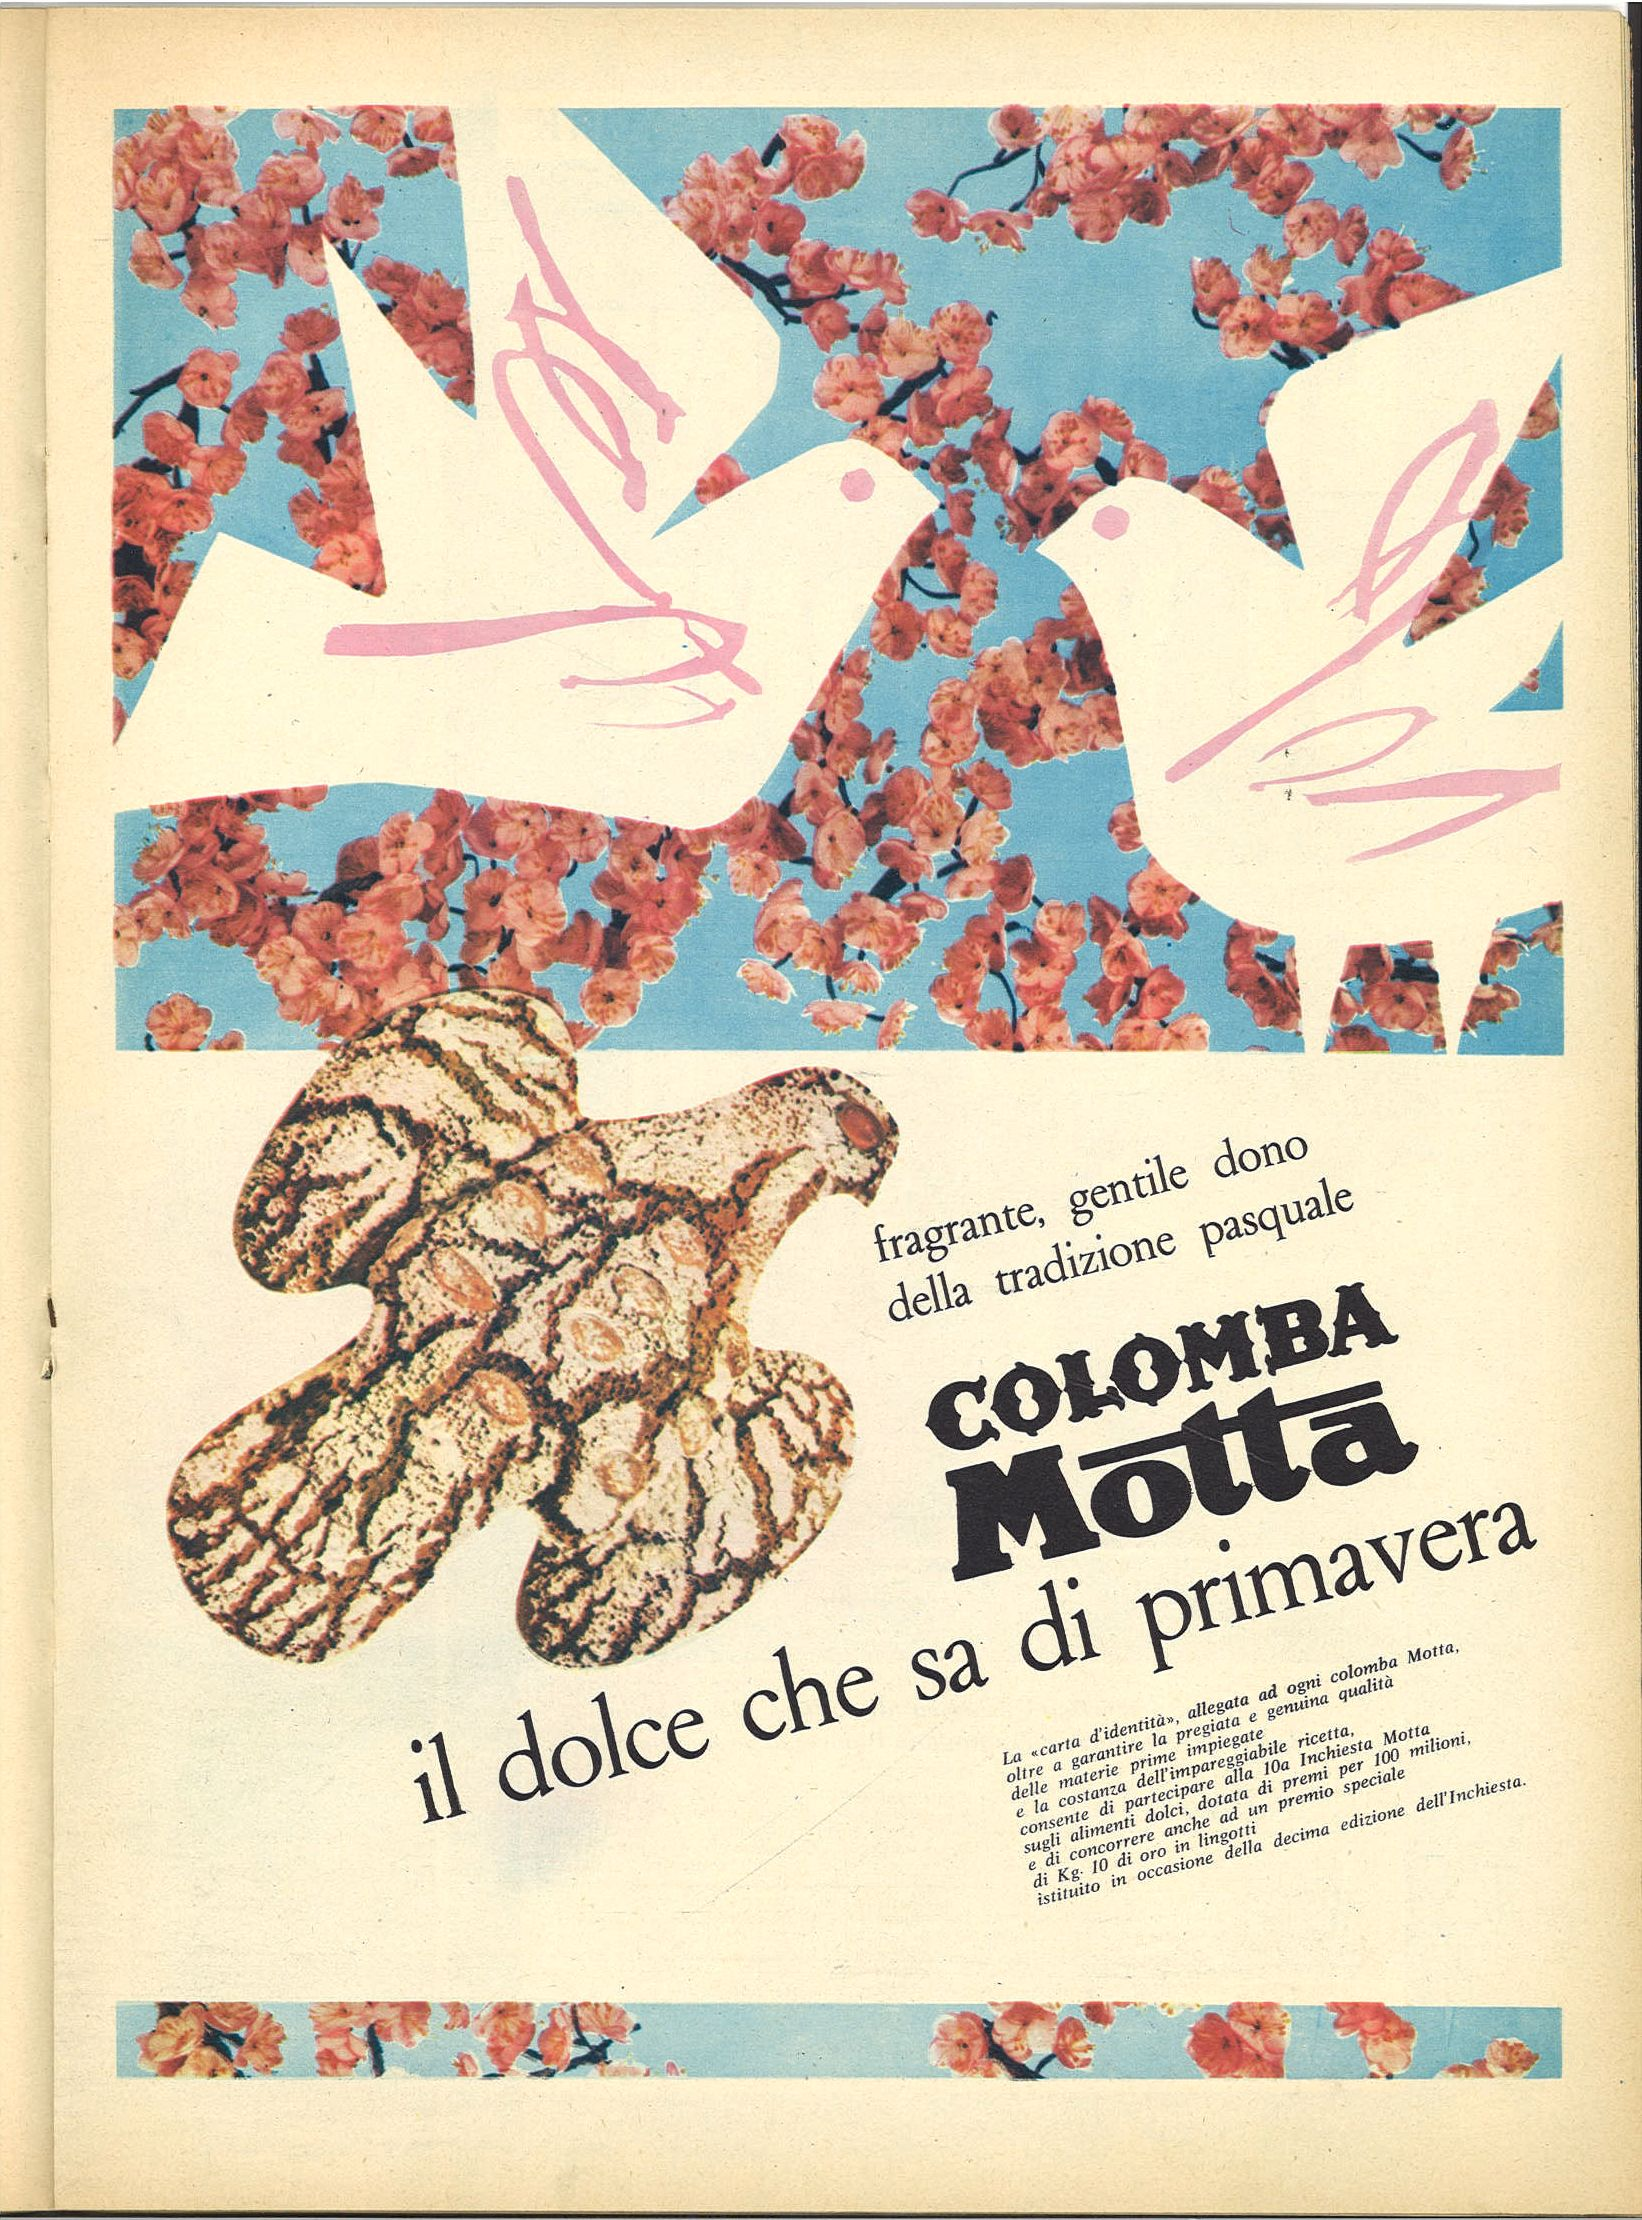 COLOMBA MOTTA. IL DOLCE CHE SA DI PRIMAVERA - ADVERTISING